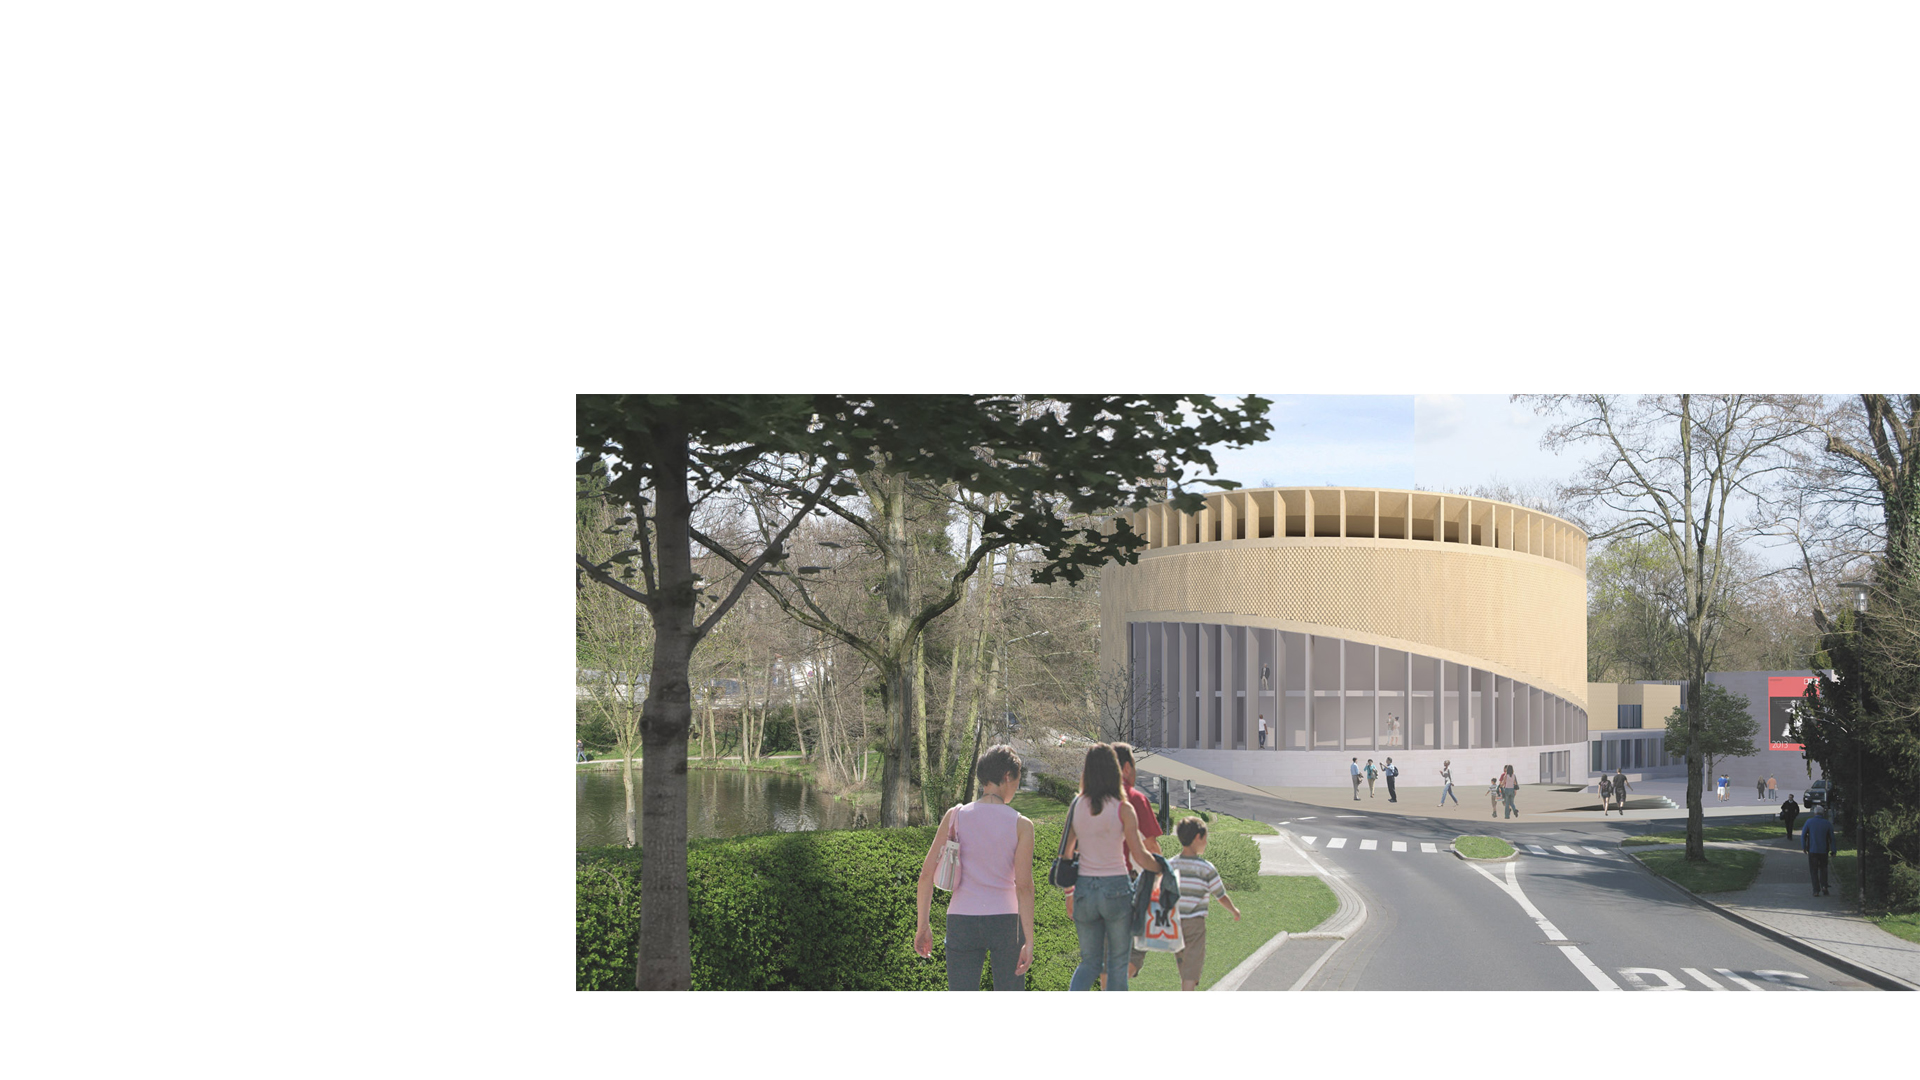 3D composite render of the proposed recital hall at the Kronberg Academy & Music School, seen from Blechstraße with Viktoria Park to the left